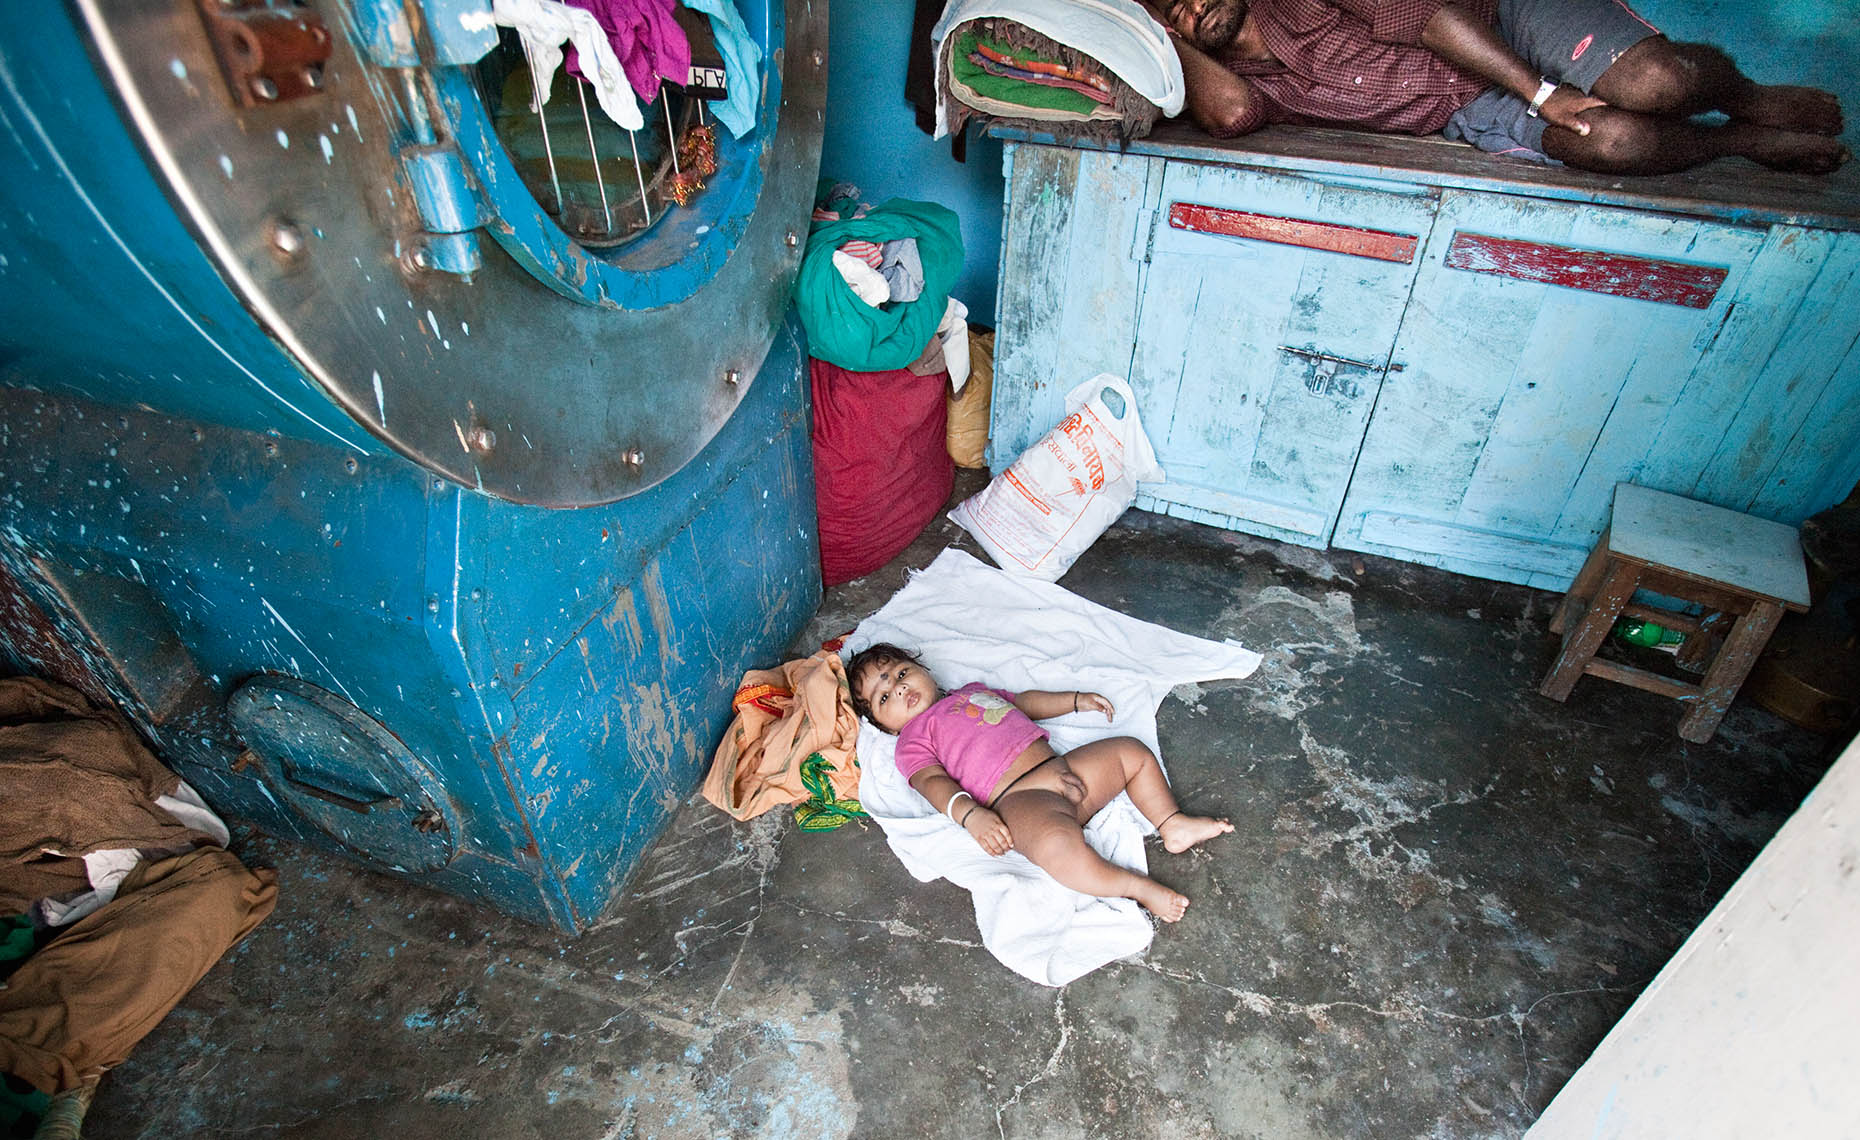 India_Baby-Laundry_MG_2833-crop